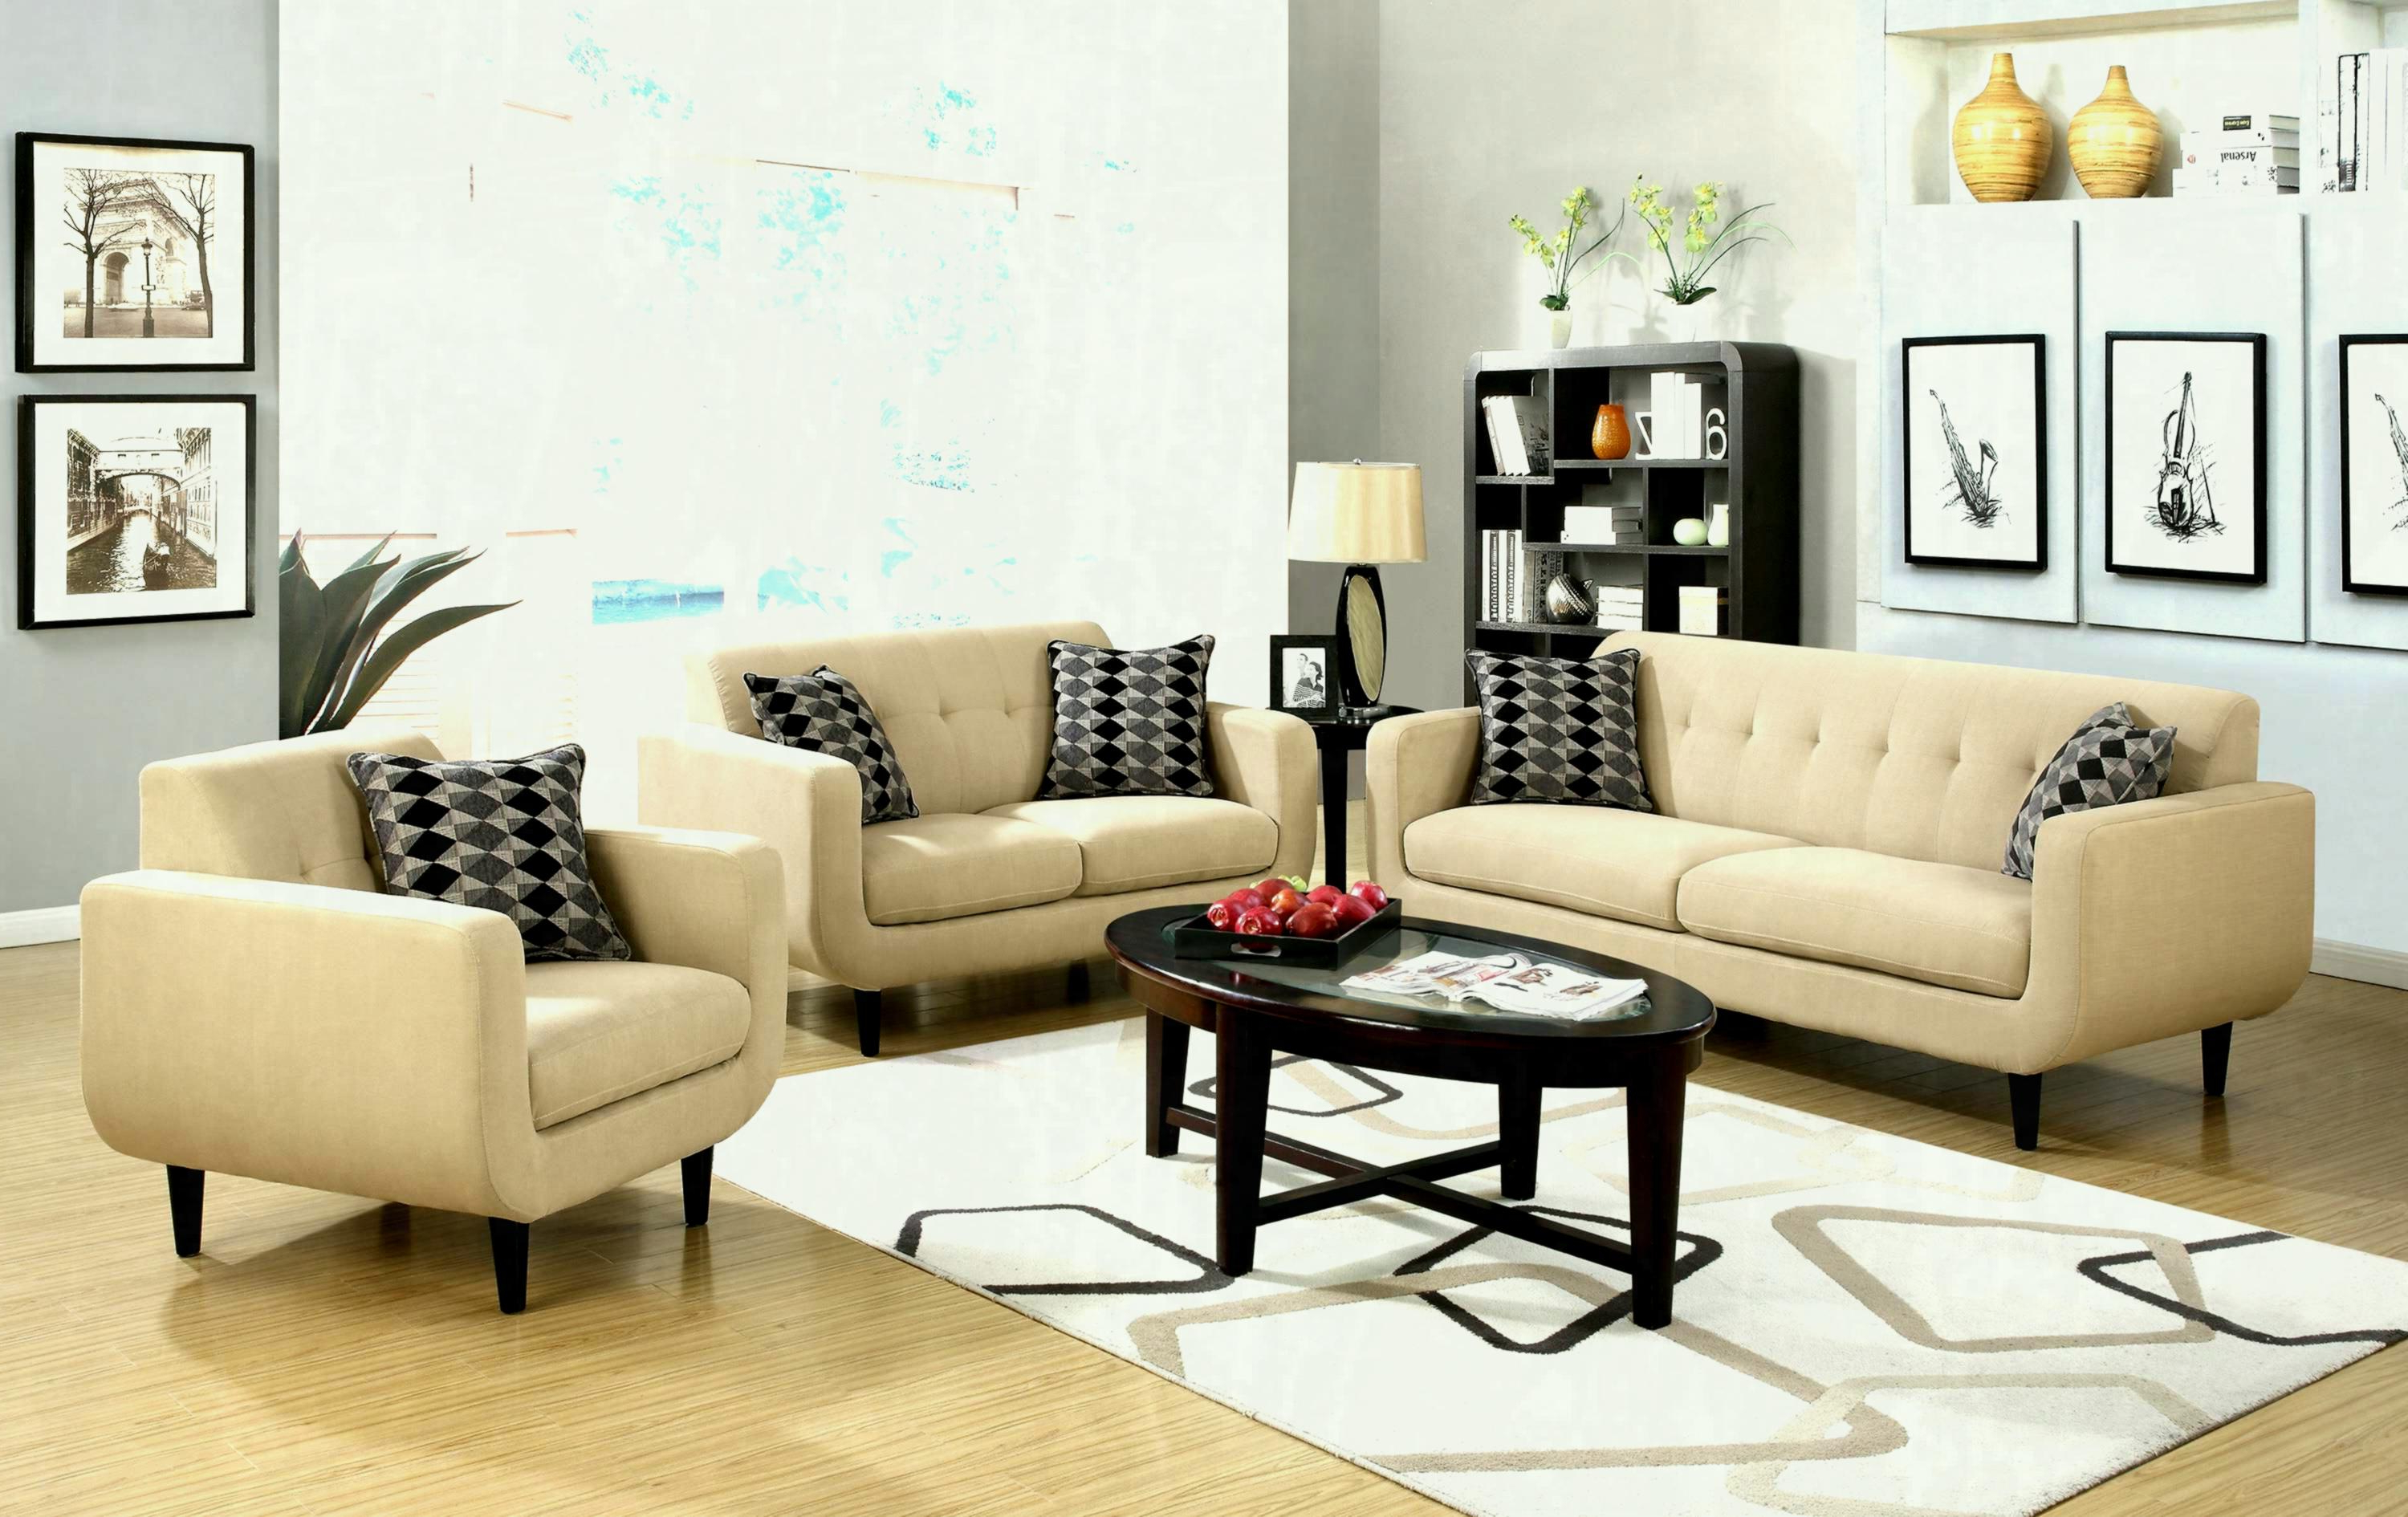 Tenny Cognac 2 Piece Left Facing Chaise Sectionals With 2 Headrest Pertaining To Well Known Tenny Cognac Piece Left Facing Chaise Sectional W Headrest Right (View 4 of 20)